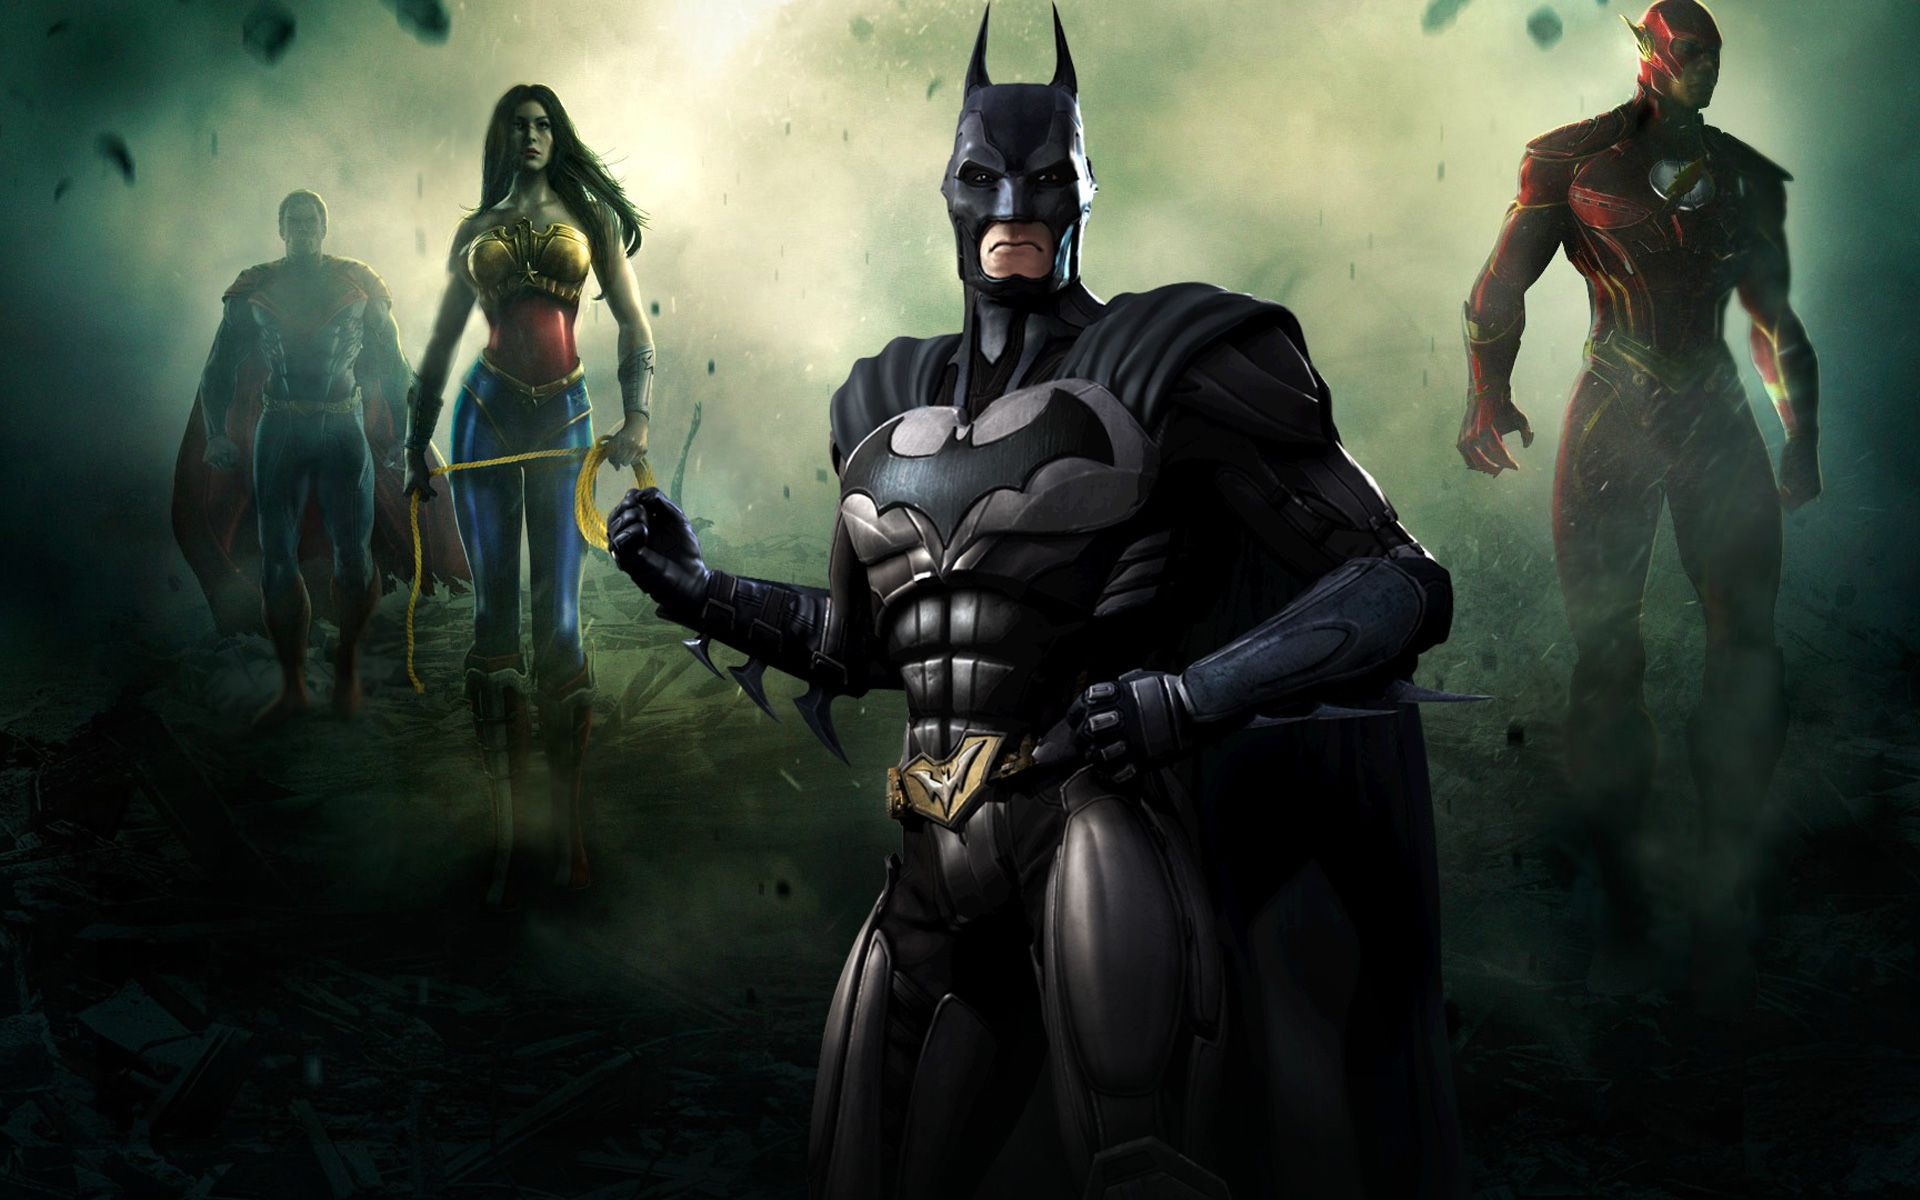 Injustice Gods Among Us Hack Amazing Cheats Power Energy Unlock All Characters And Unlock All Special Costumes Batman Injustice Injustice Superman Games